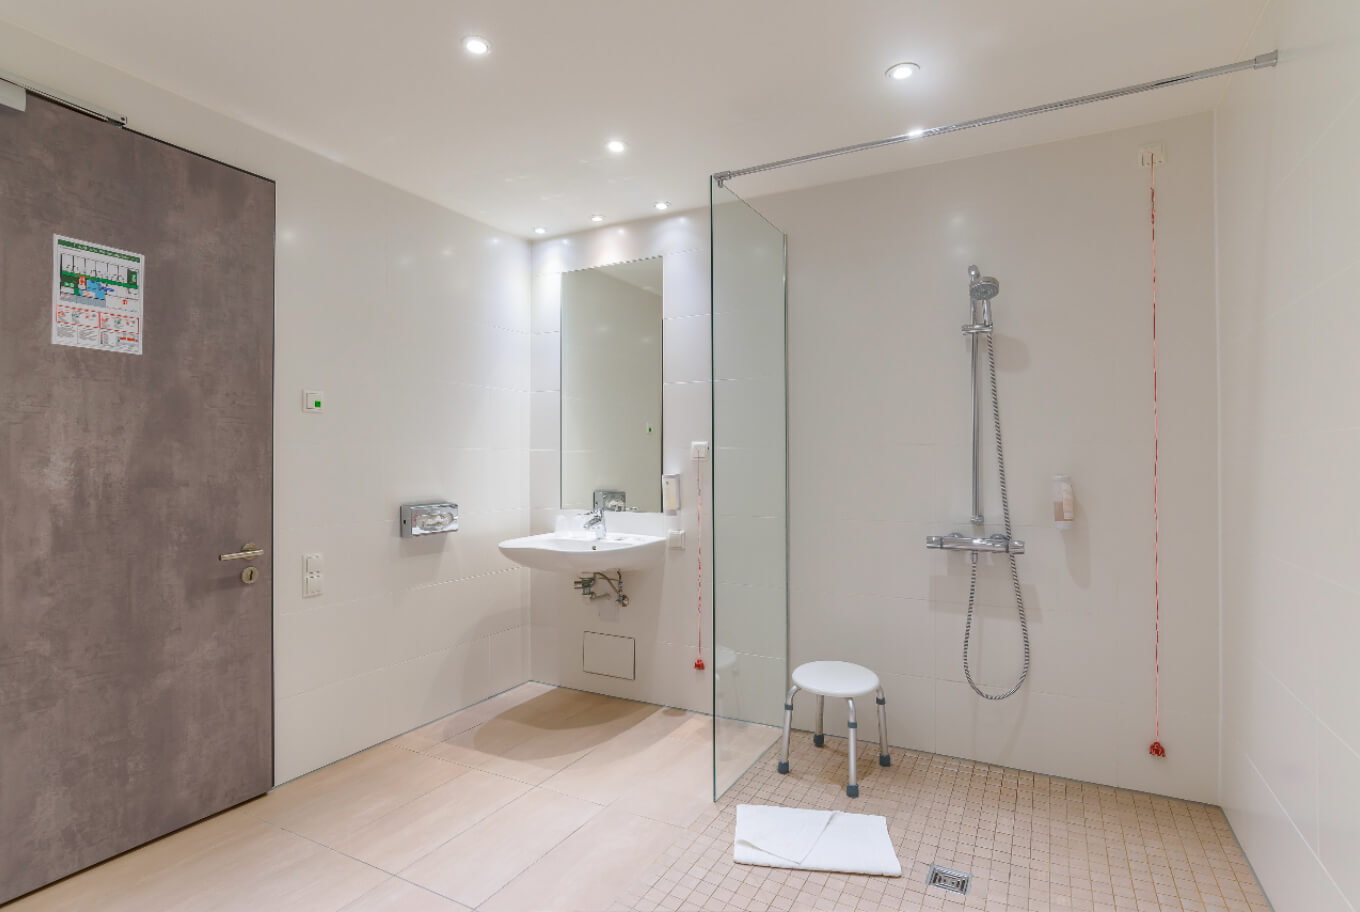 Handicapped accessible bathroom in the Boutique Hotel Munich